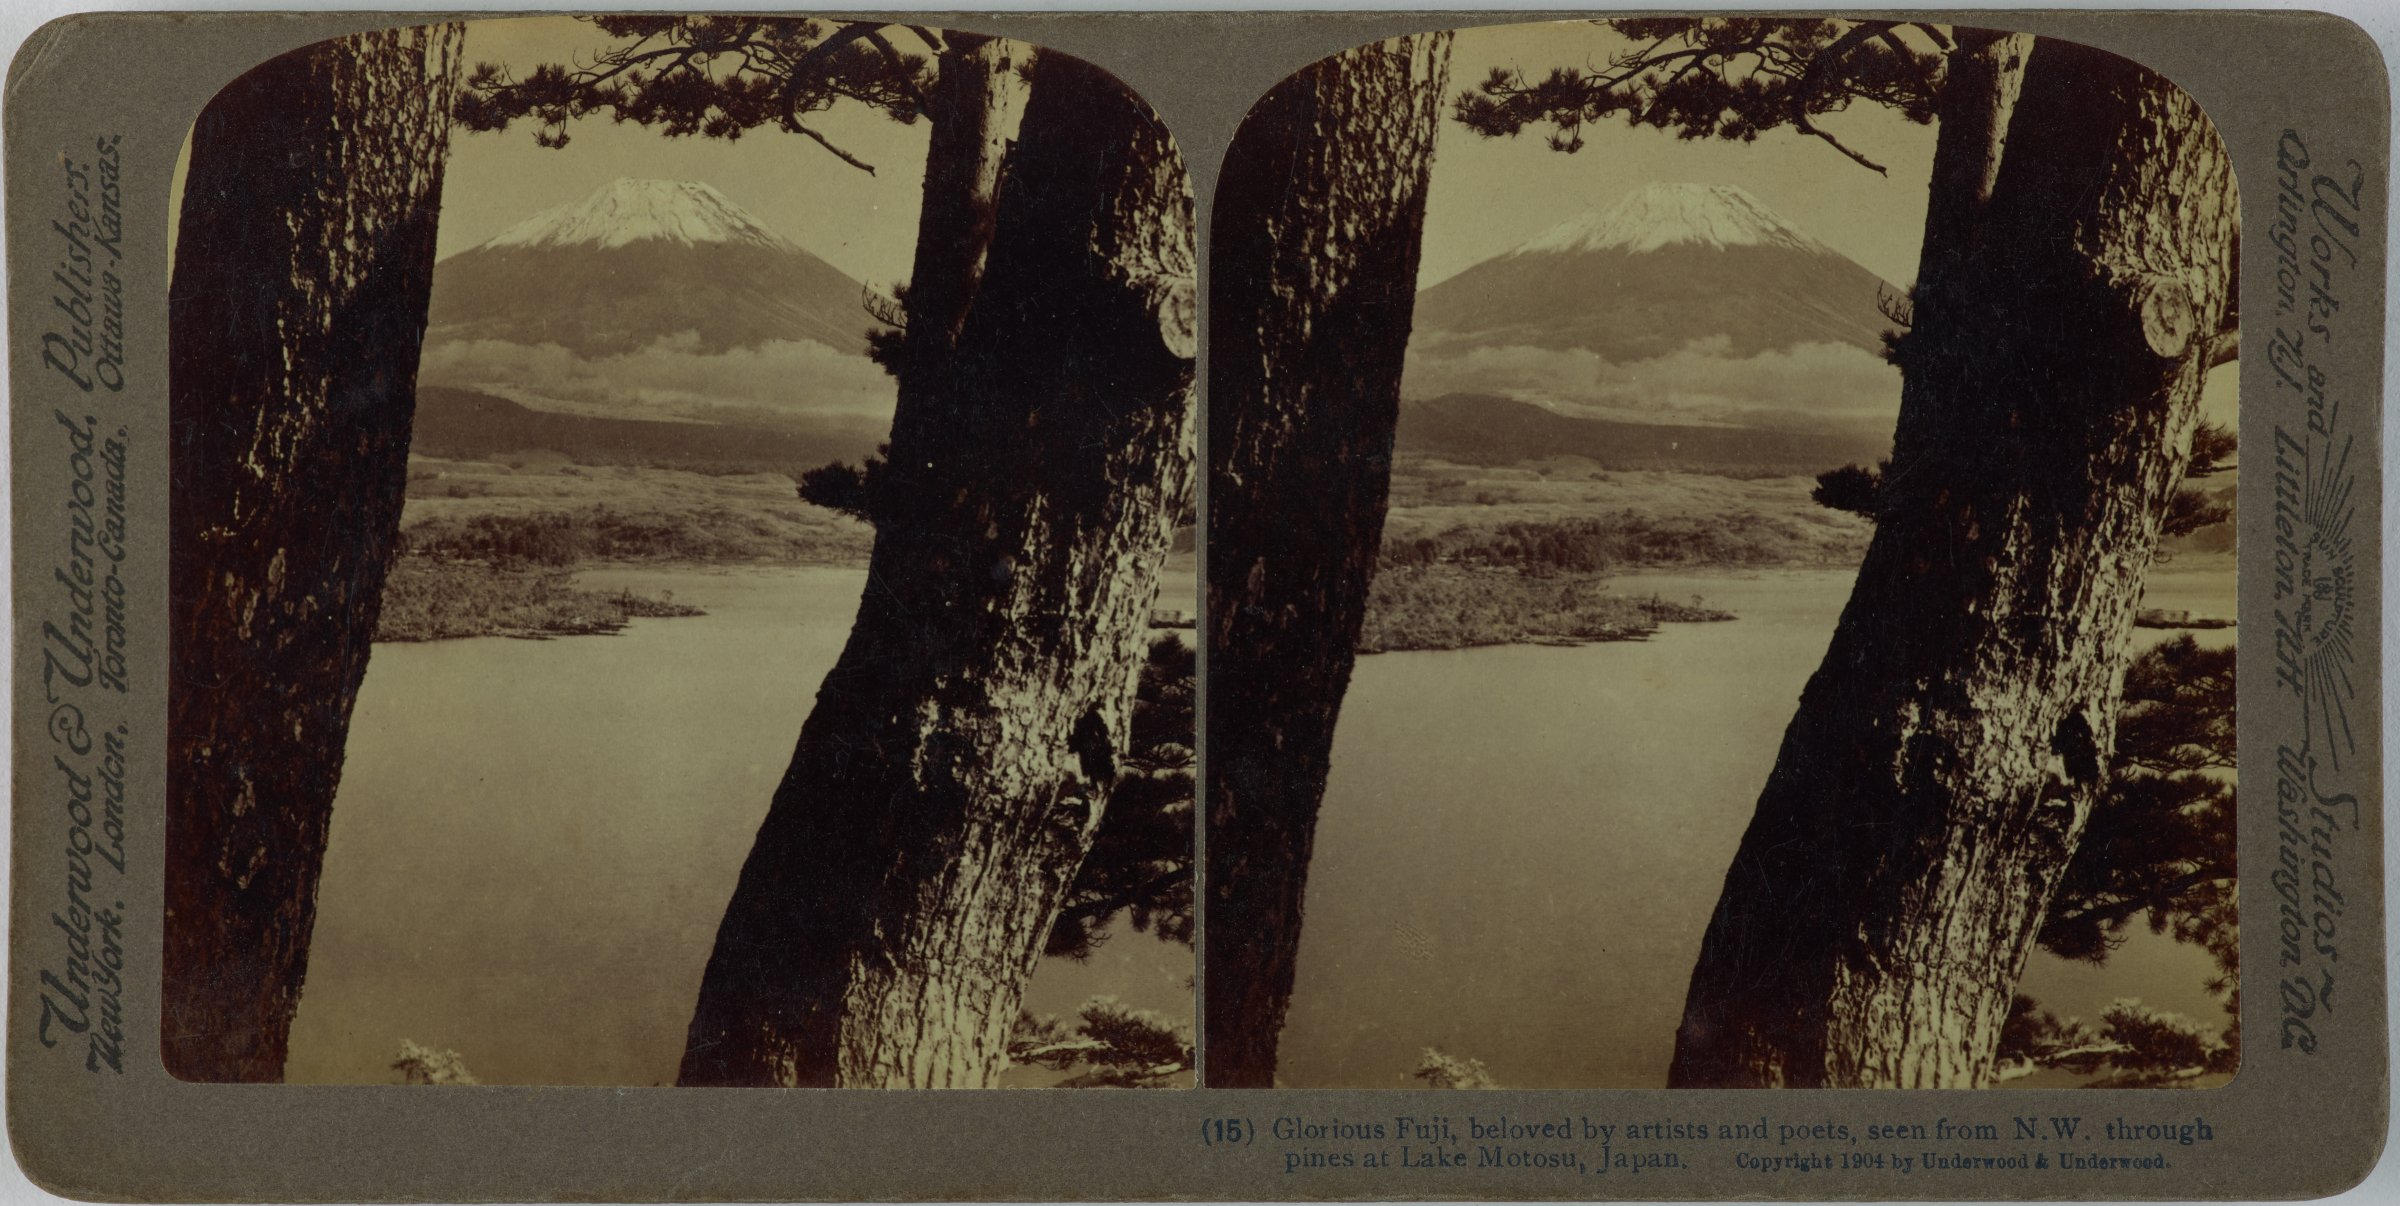 Glorious Fuji, beloved by artists and poets, seen from N.W. through pines at Lake Motosu, Japan, Underwood & Underwood Publishers, gelatin silver prints mounted on card